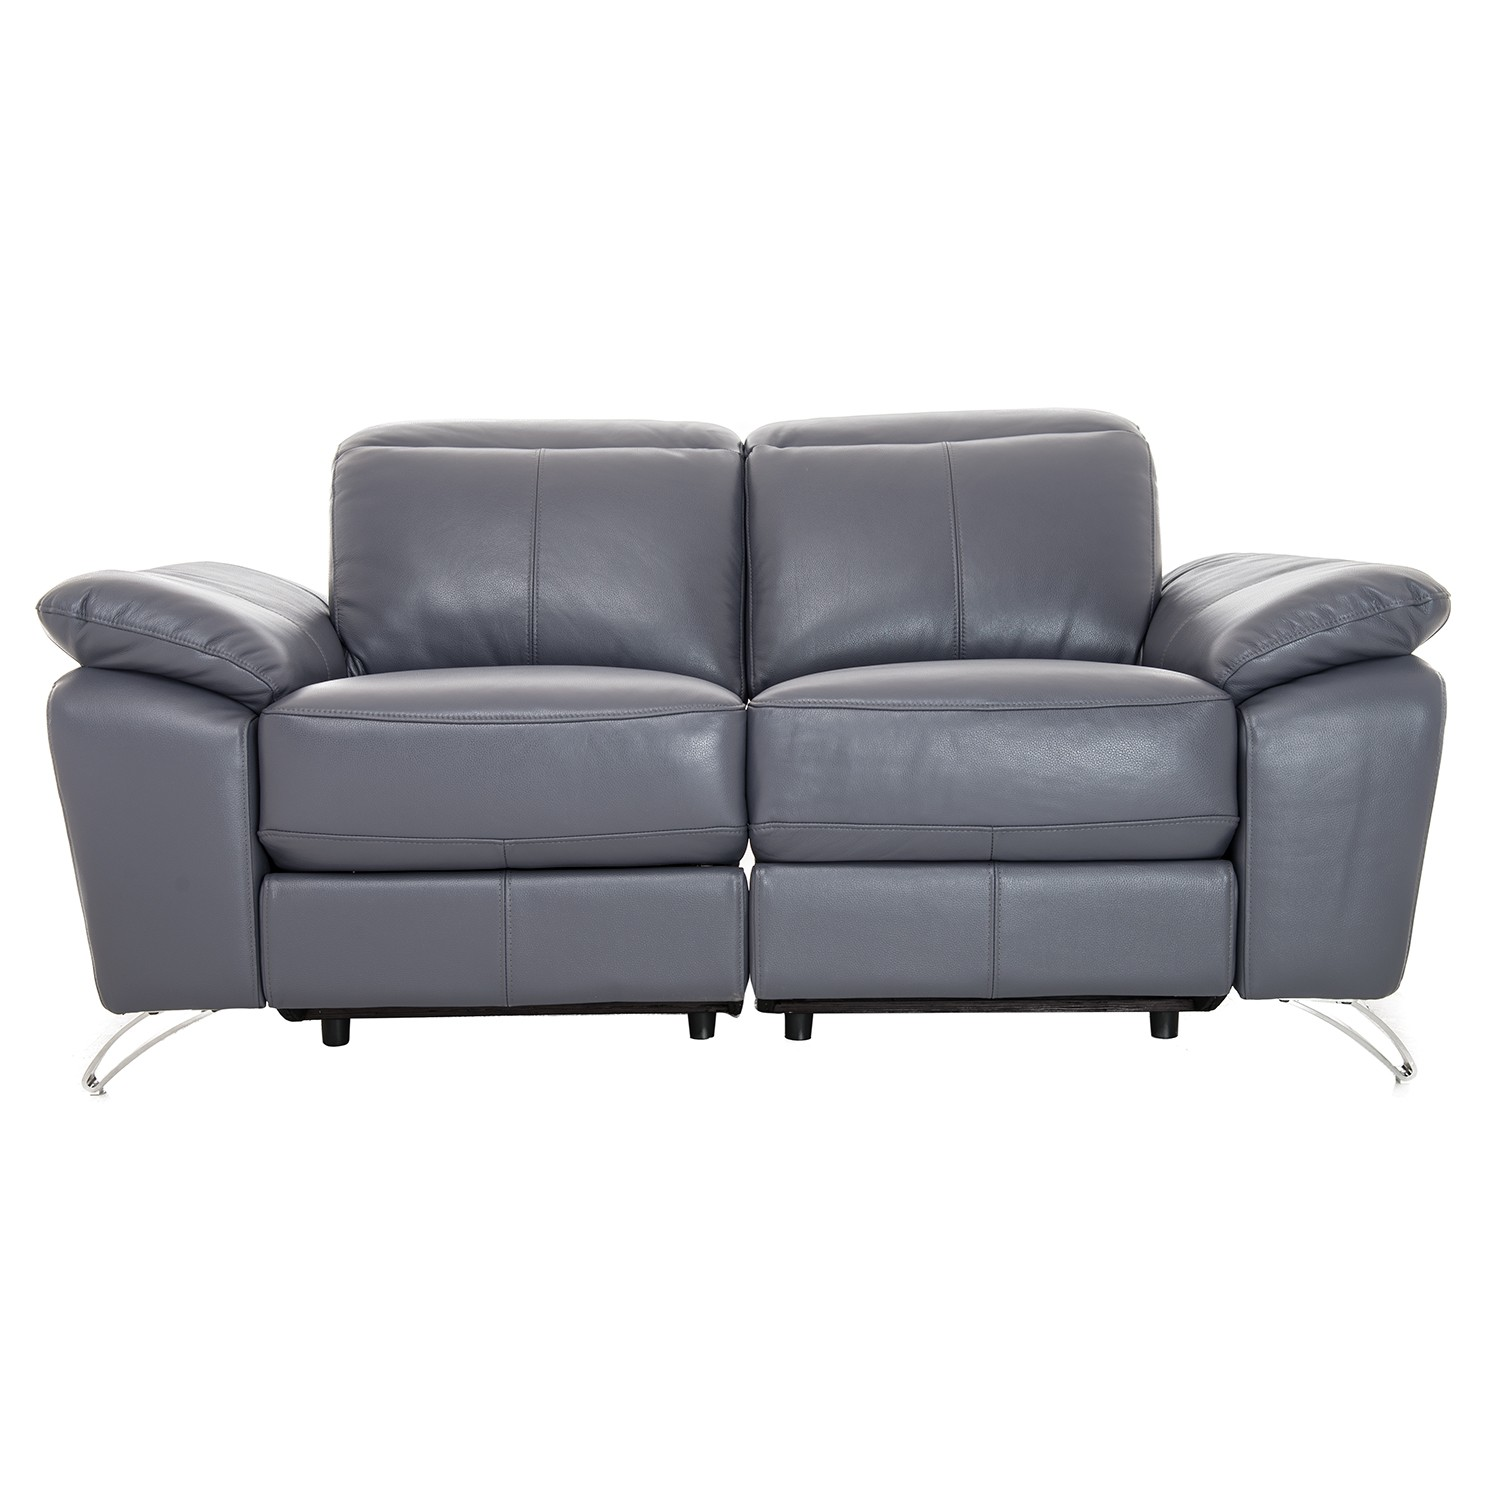 2 seater power recliner sofa back of console table vivaldi two